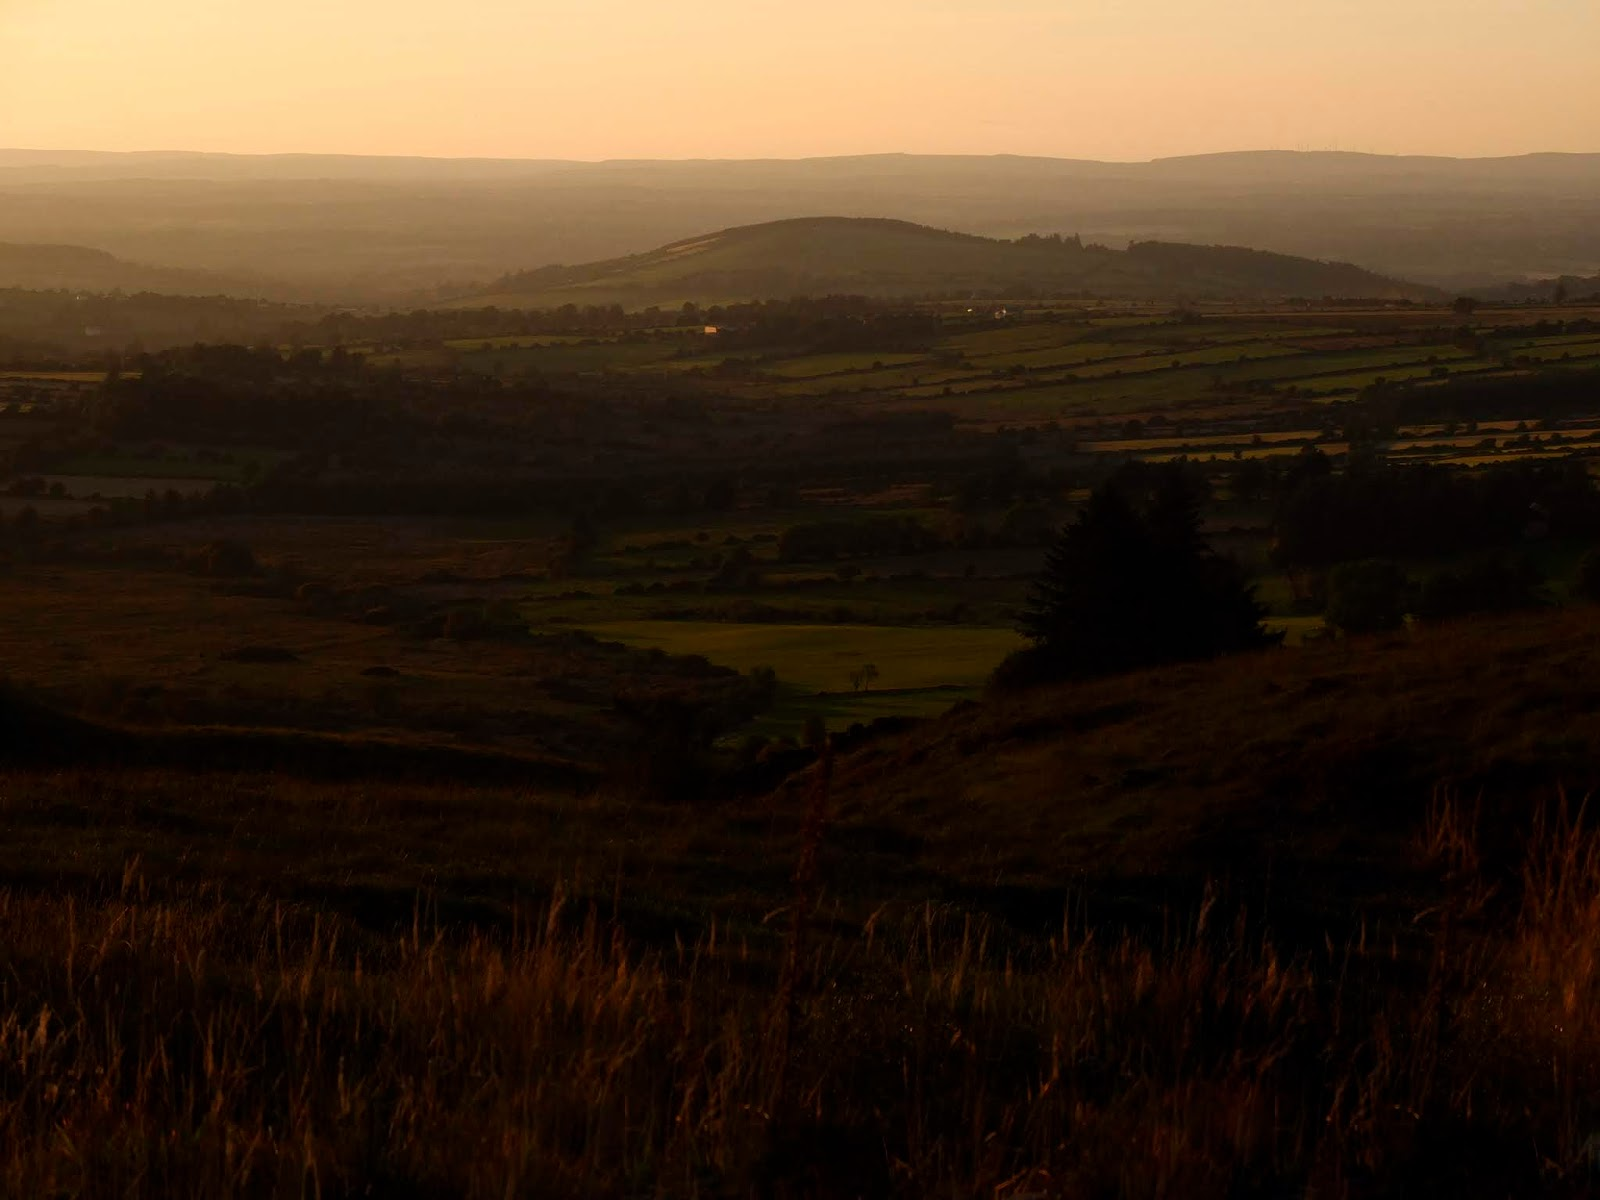 A mountain valley during golden hour in the Boggeragh Mountains, Co.Cork.